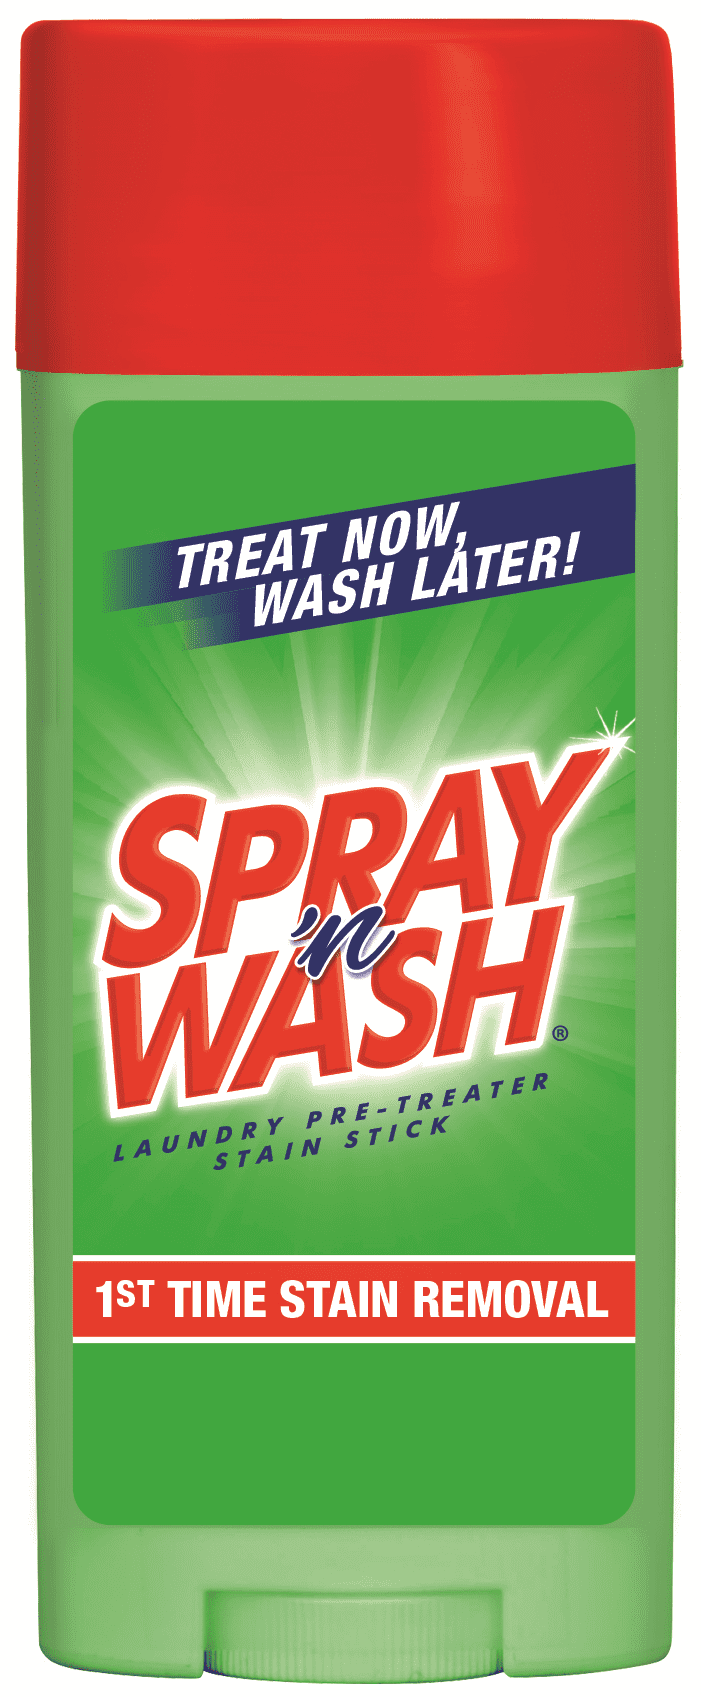 Spray 'n Wash® Laundry Stain Removal Pre-Treater Stain Stick